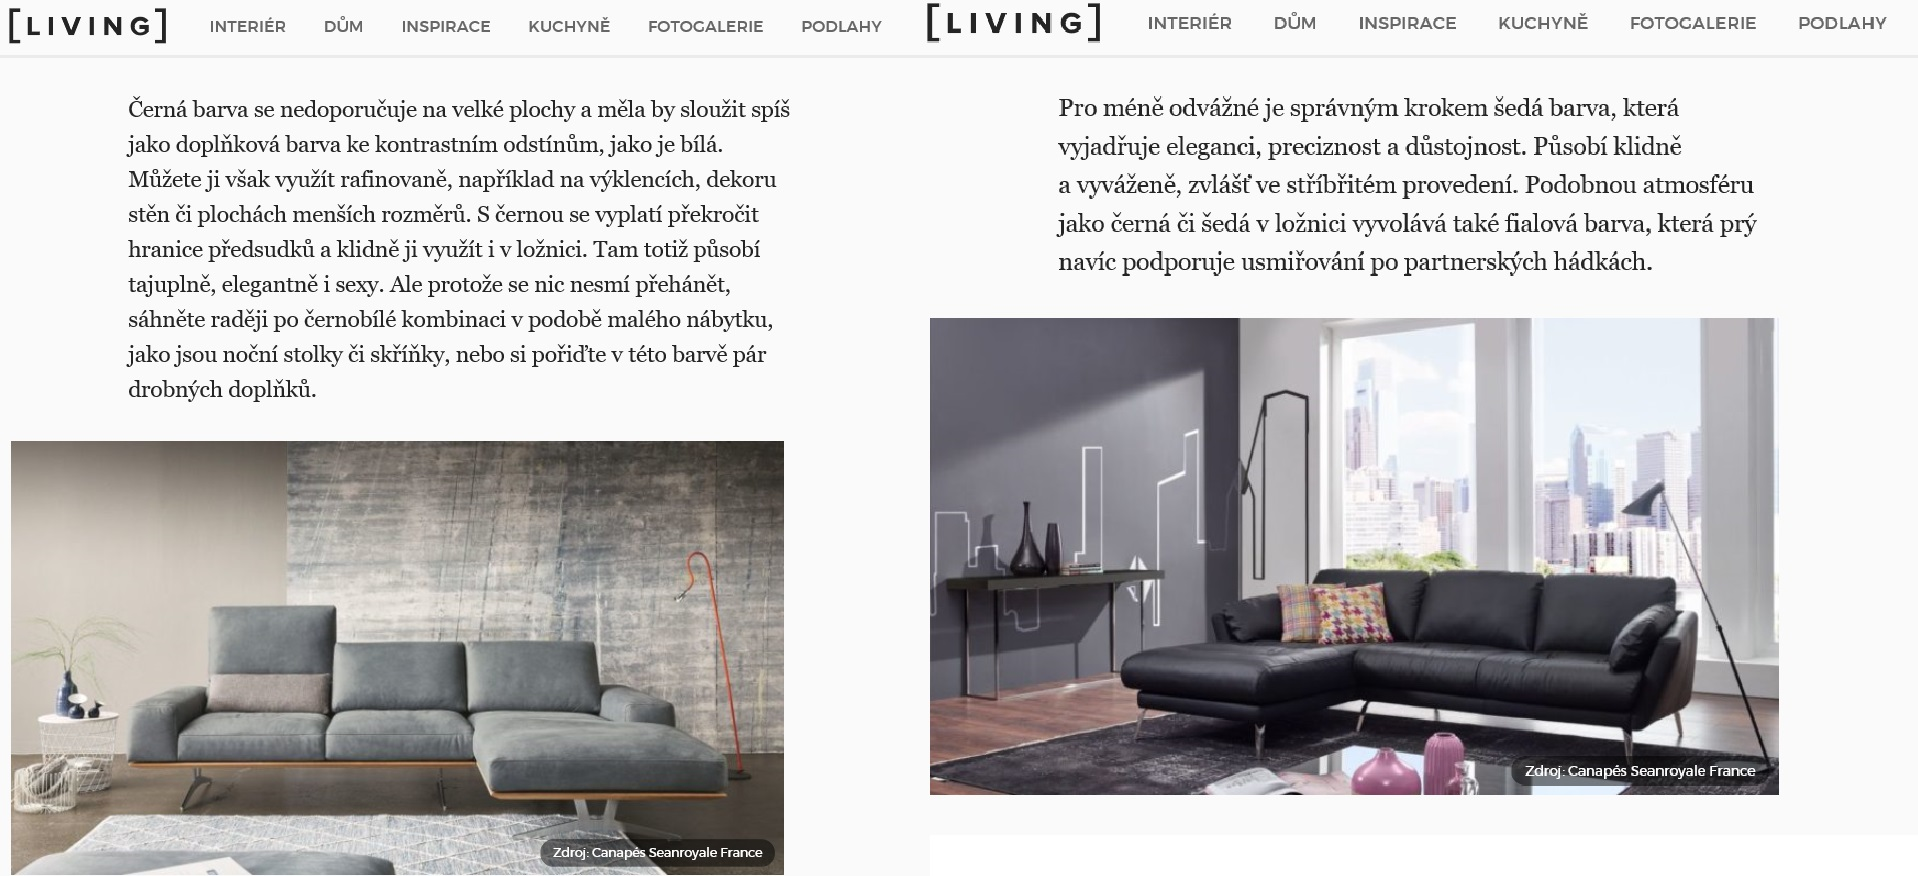 Parution magazine LIVING.CZ 26 novembre 2019